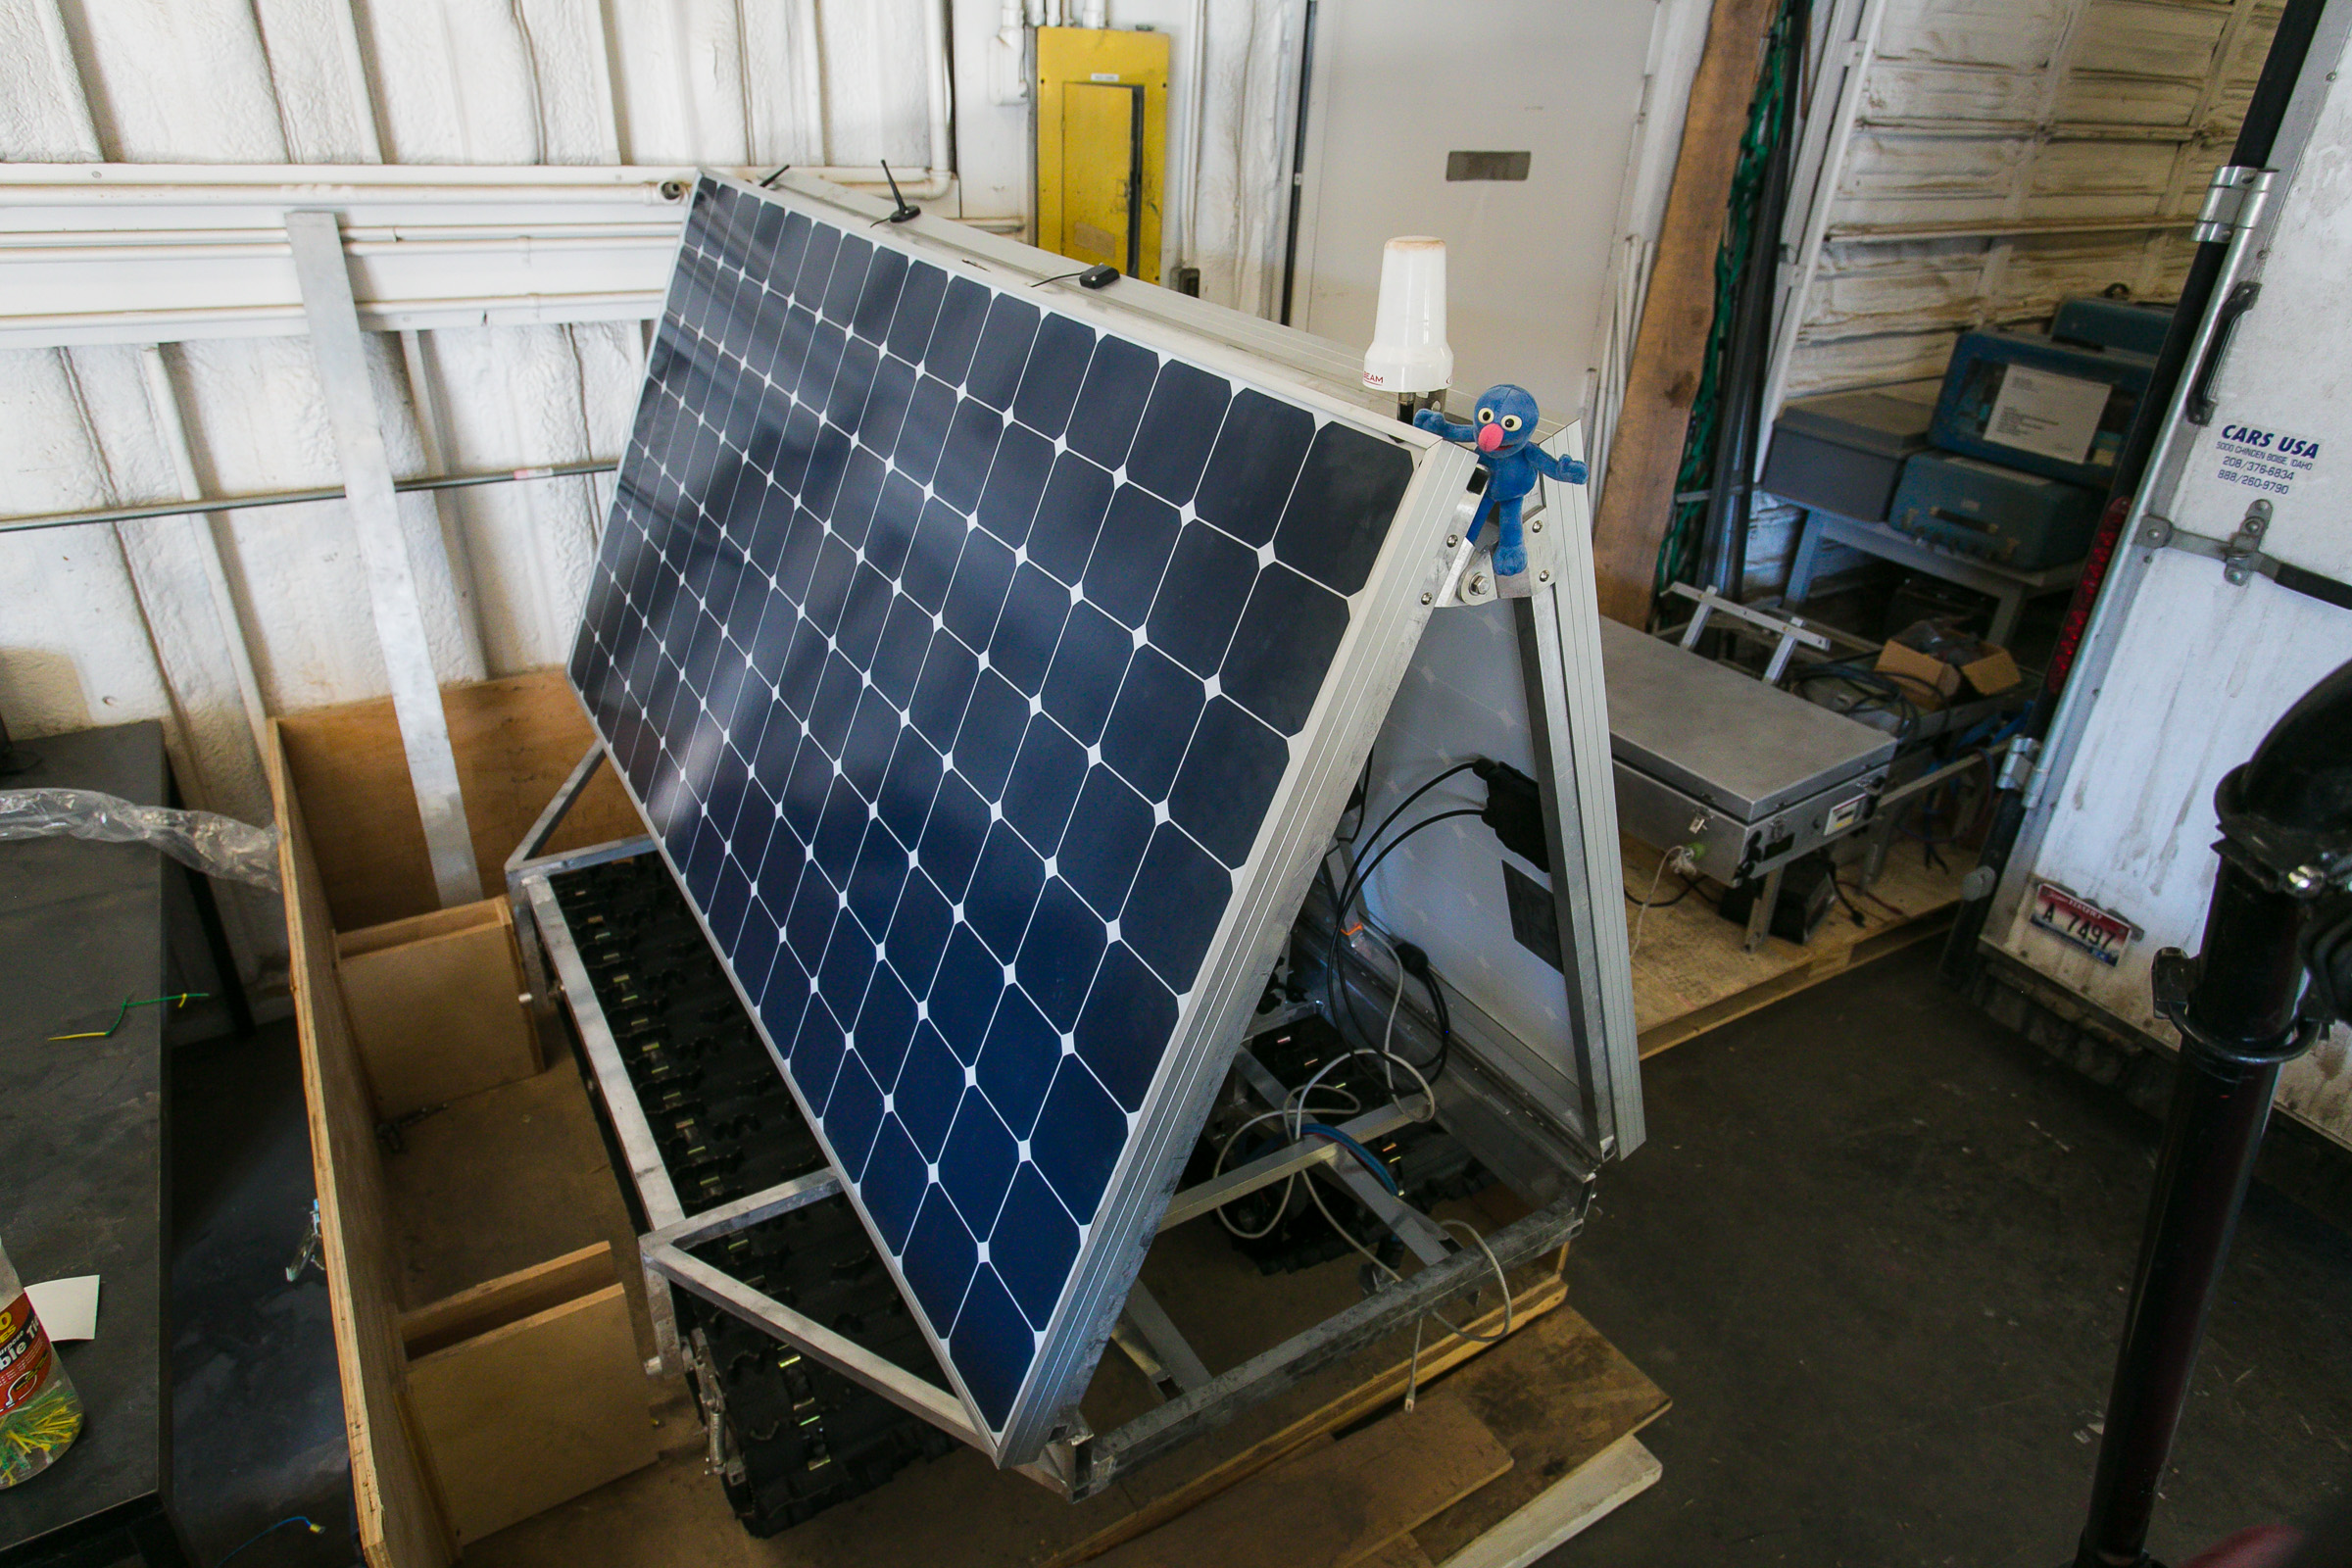 The new solar panels give GROVER 40 percent more power and enable the robot to travel a much greater distance on a single charge. Photo: Rachel White